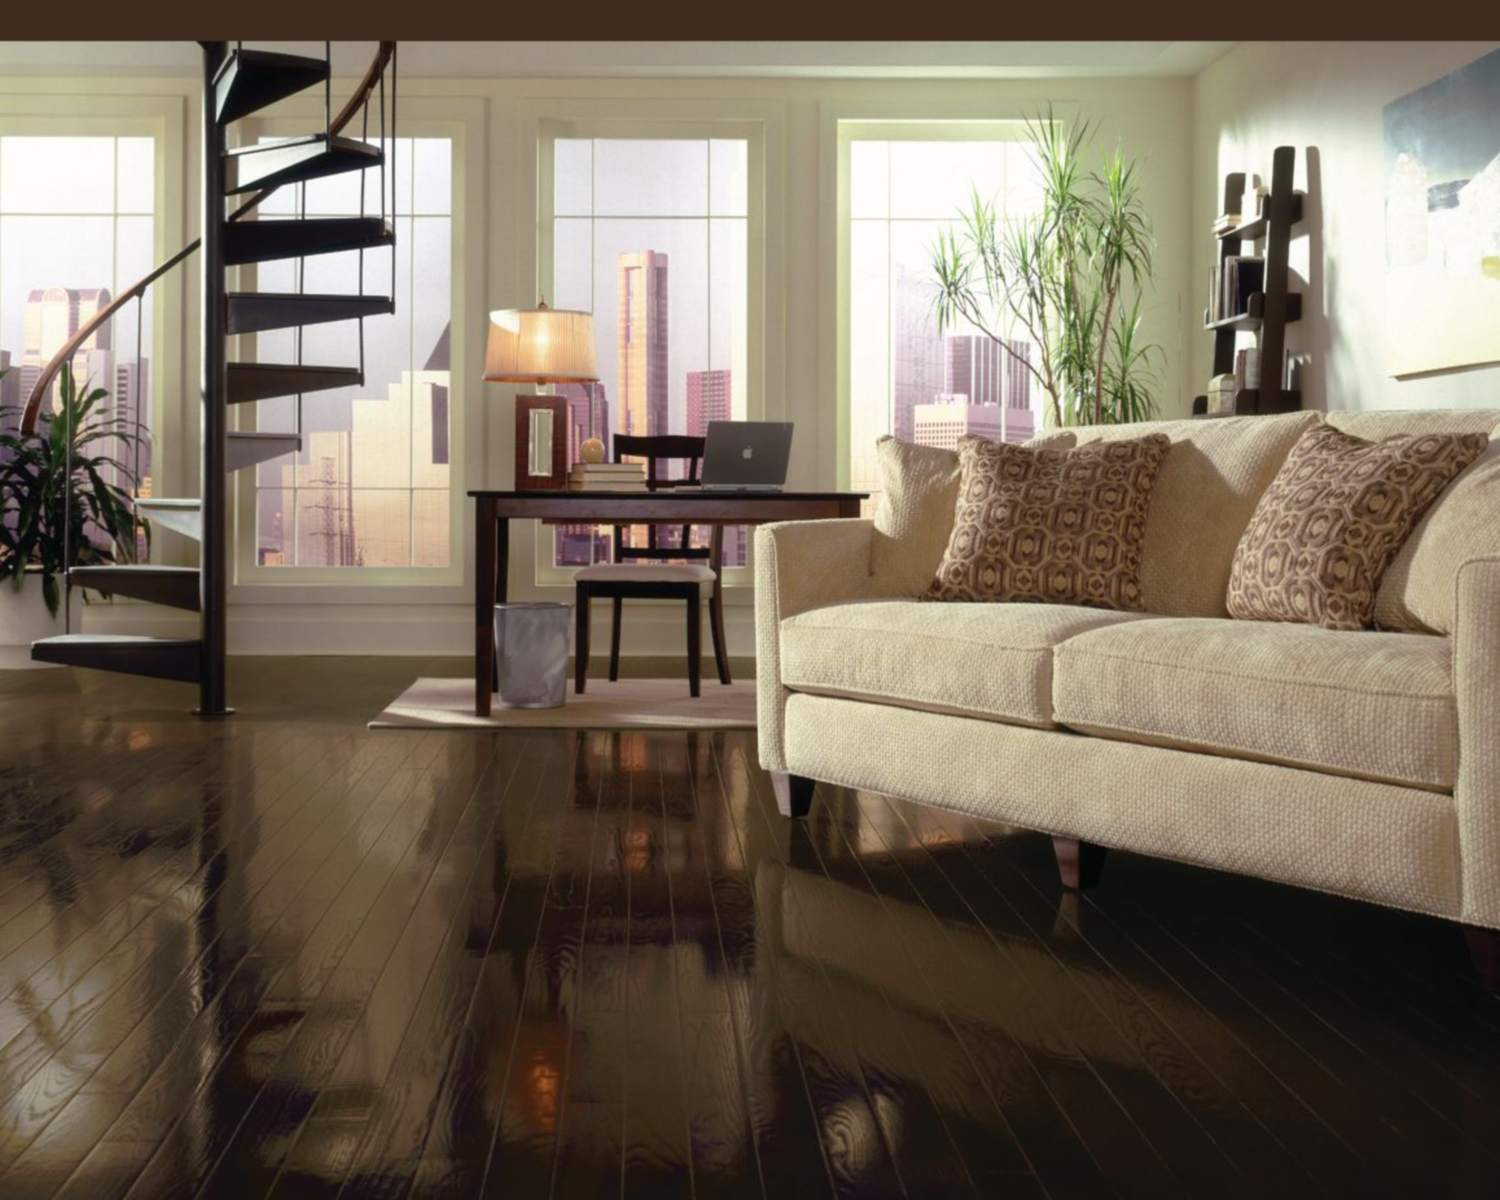 how much does it cost for hardwood floors 1500 sf of top 5 brands for solid hardwood flooring with a living room with bruce espresso oak flooring